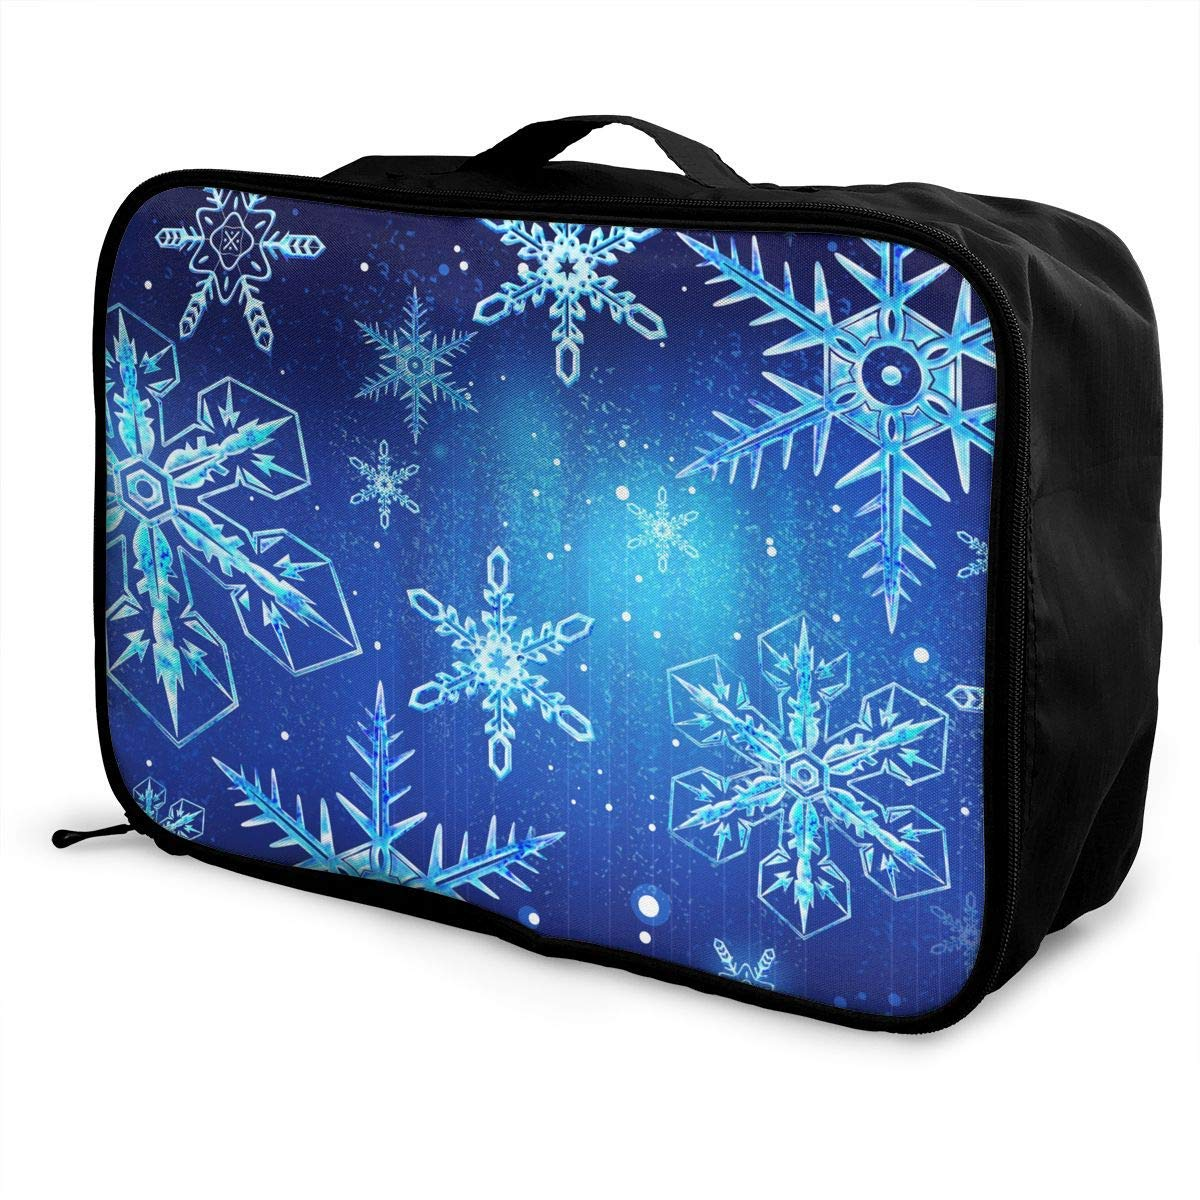 Travel Lightweight Waterproof Foldable Storage Carry Luggage Duffle Tote Bag JTRVW Luggage Bags for Travel Christmas Snowflake Blue